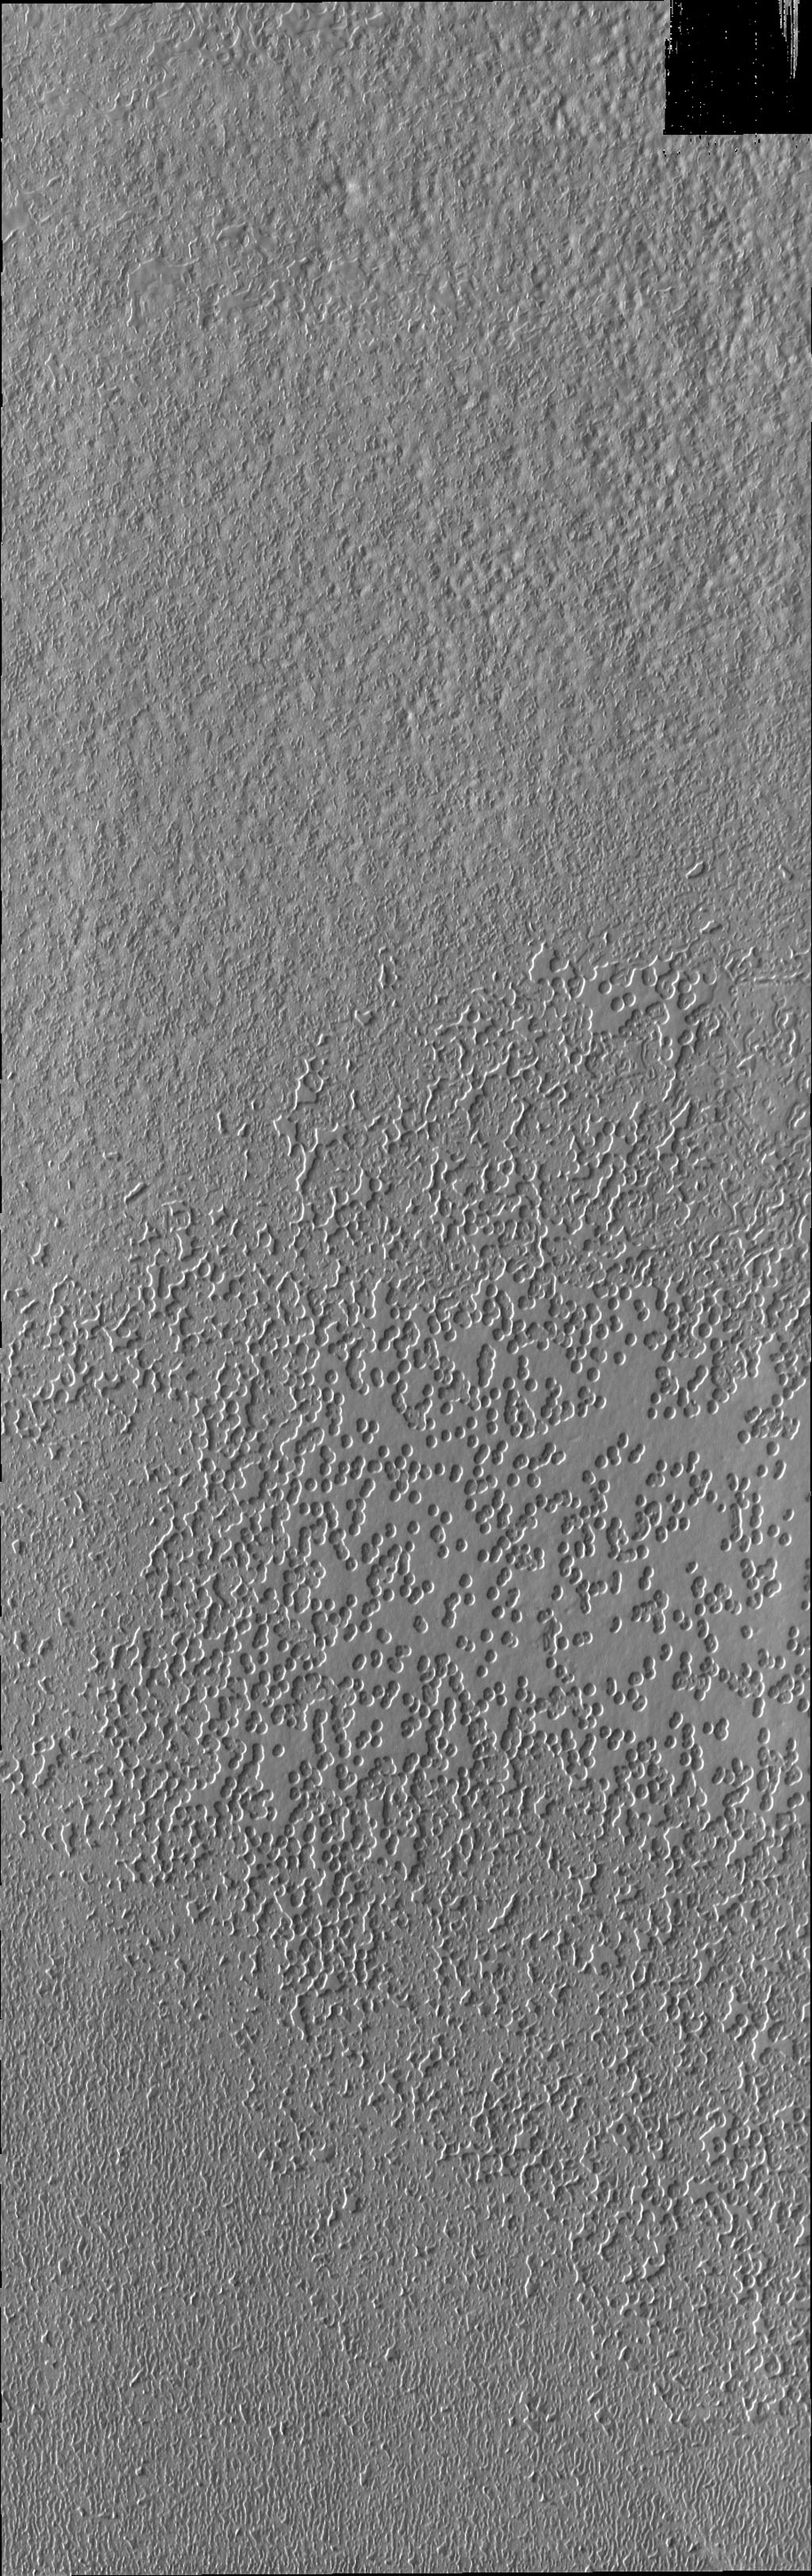 One type of surface seen on Mars' south pole is this 'swiss-cheese' terrain of circular depressions as seen in this image from NASA's 2001 Mars Odyssey spacecraft.